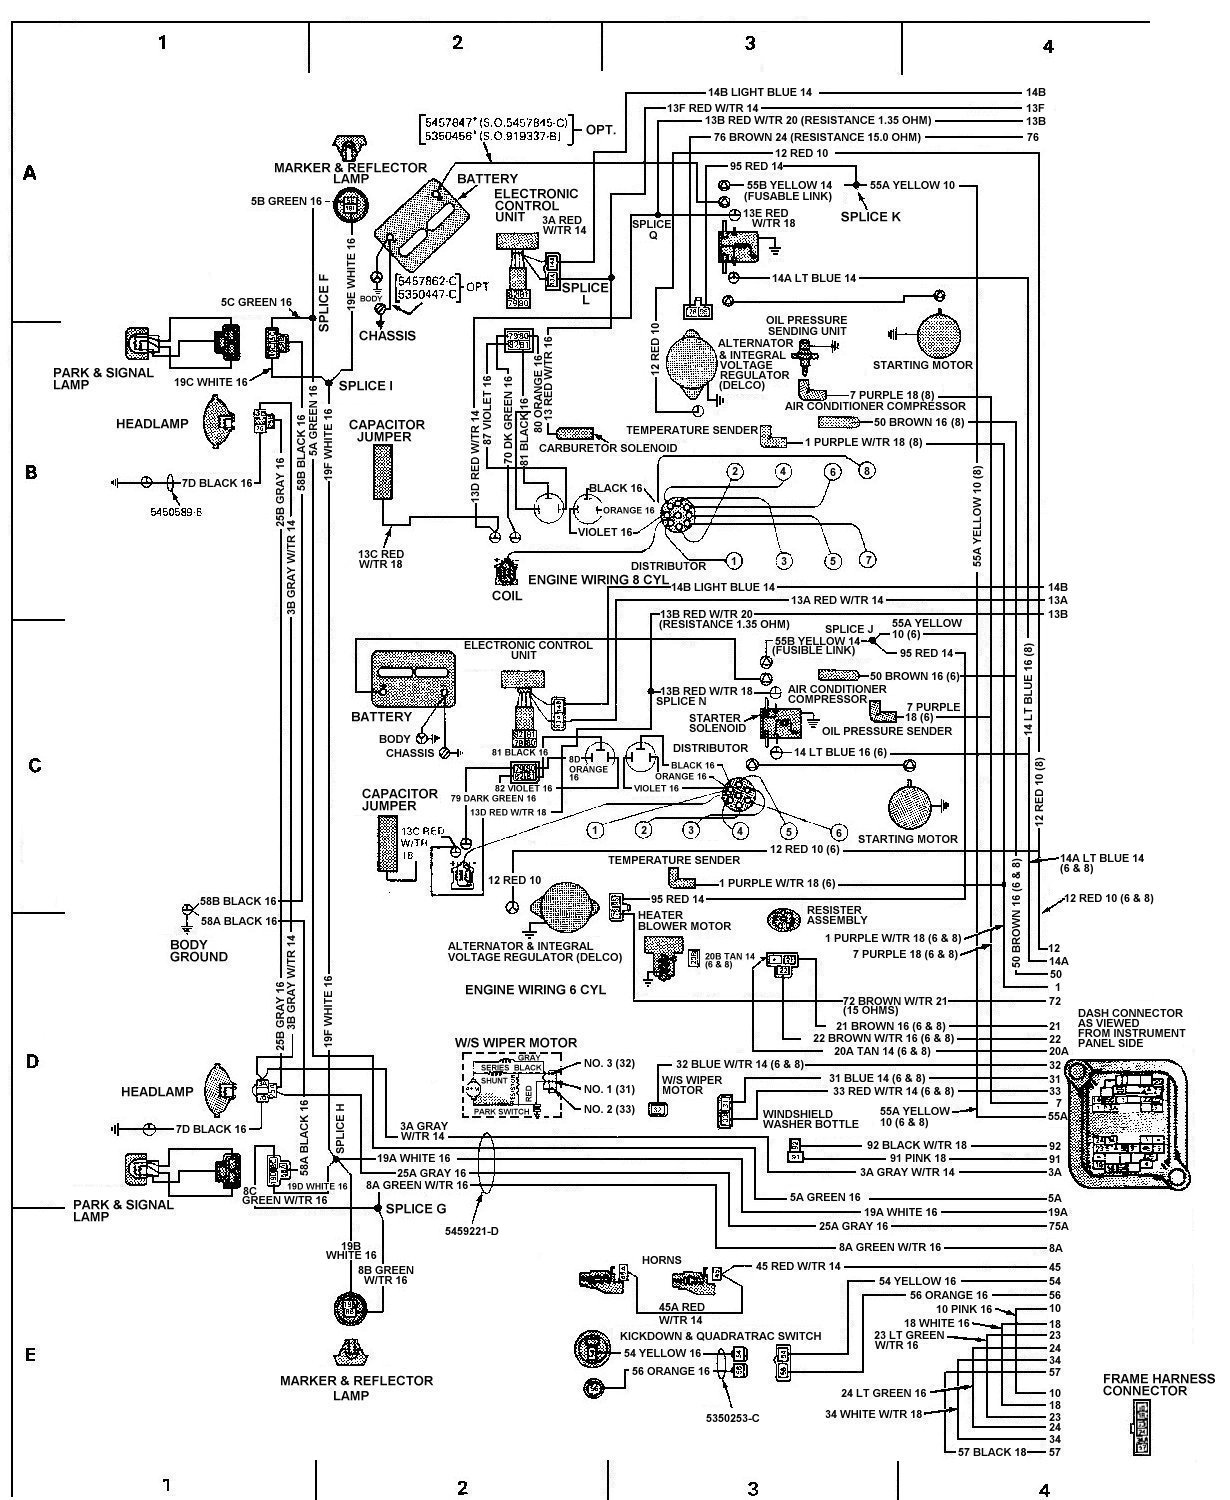 Wiring Diagram #1